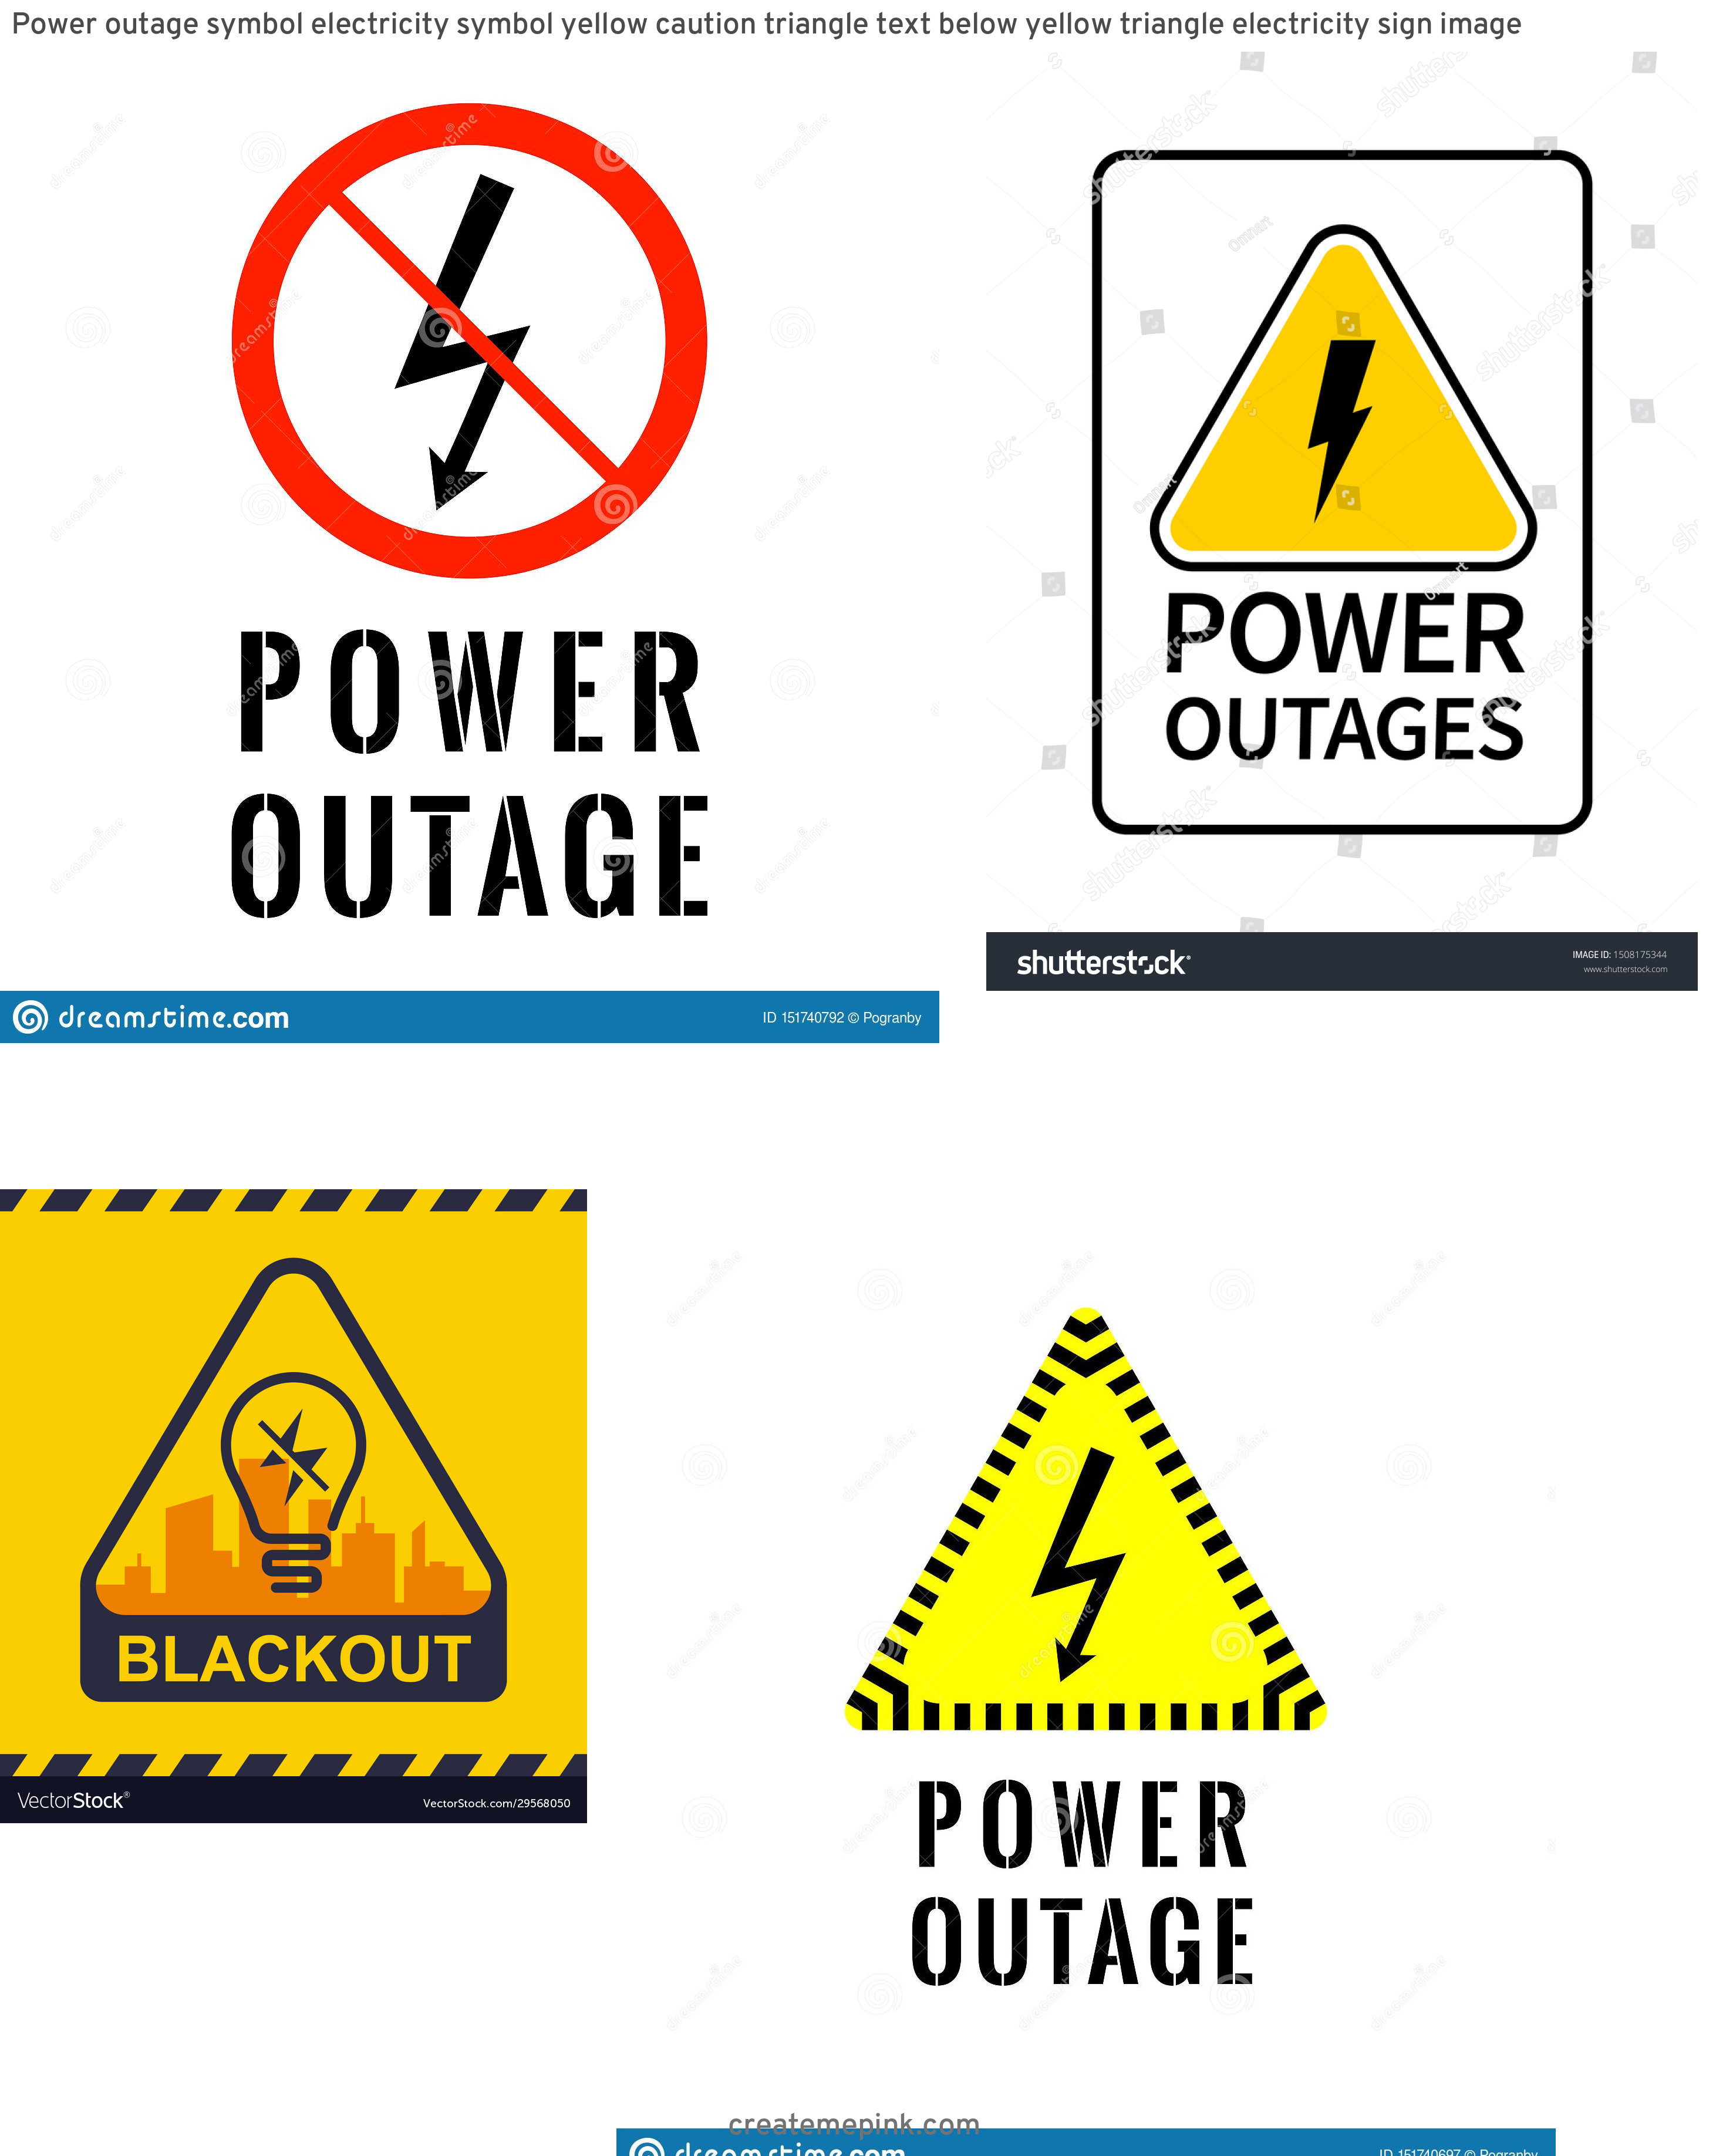 Vector Power Outage: Power Outage Symbol Electricity Symbol Yellow Caution Triangle Text Below Yellow Triangle Electricity Sign Image